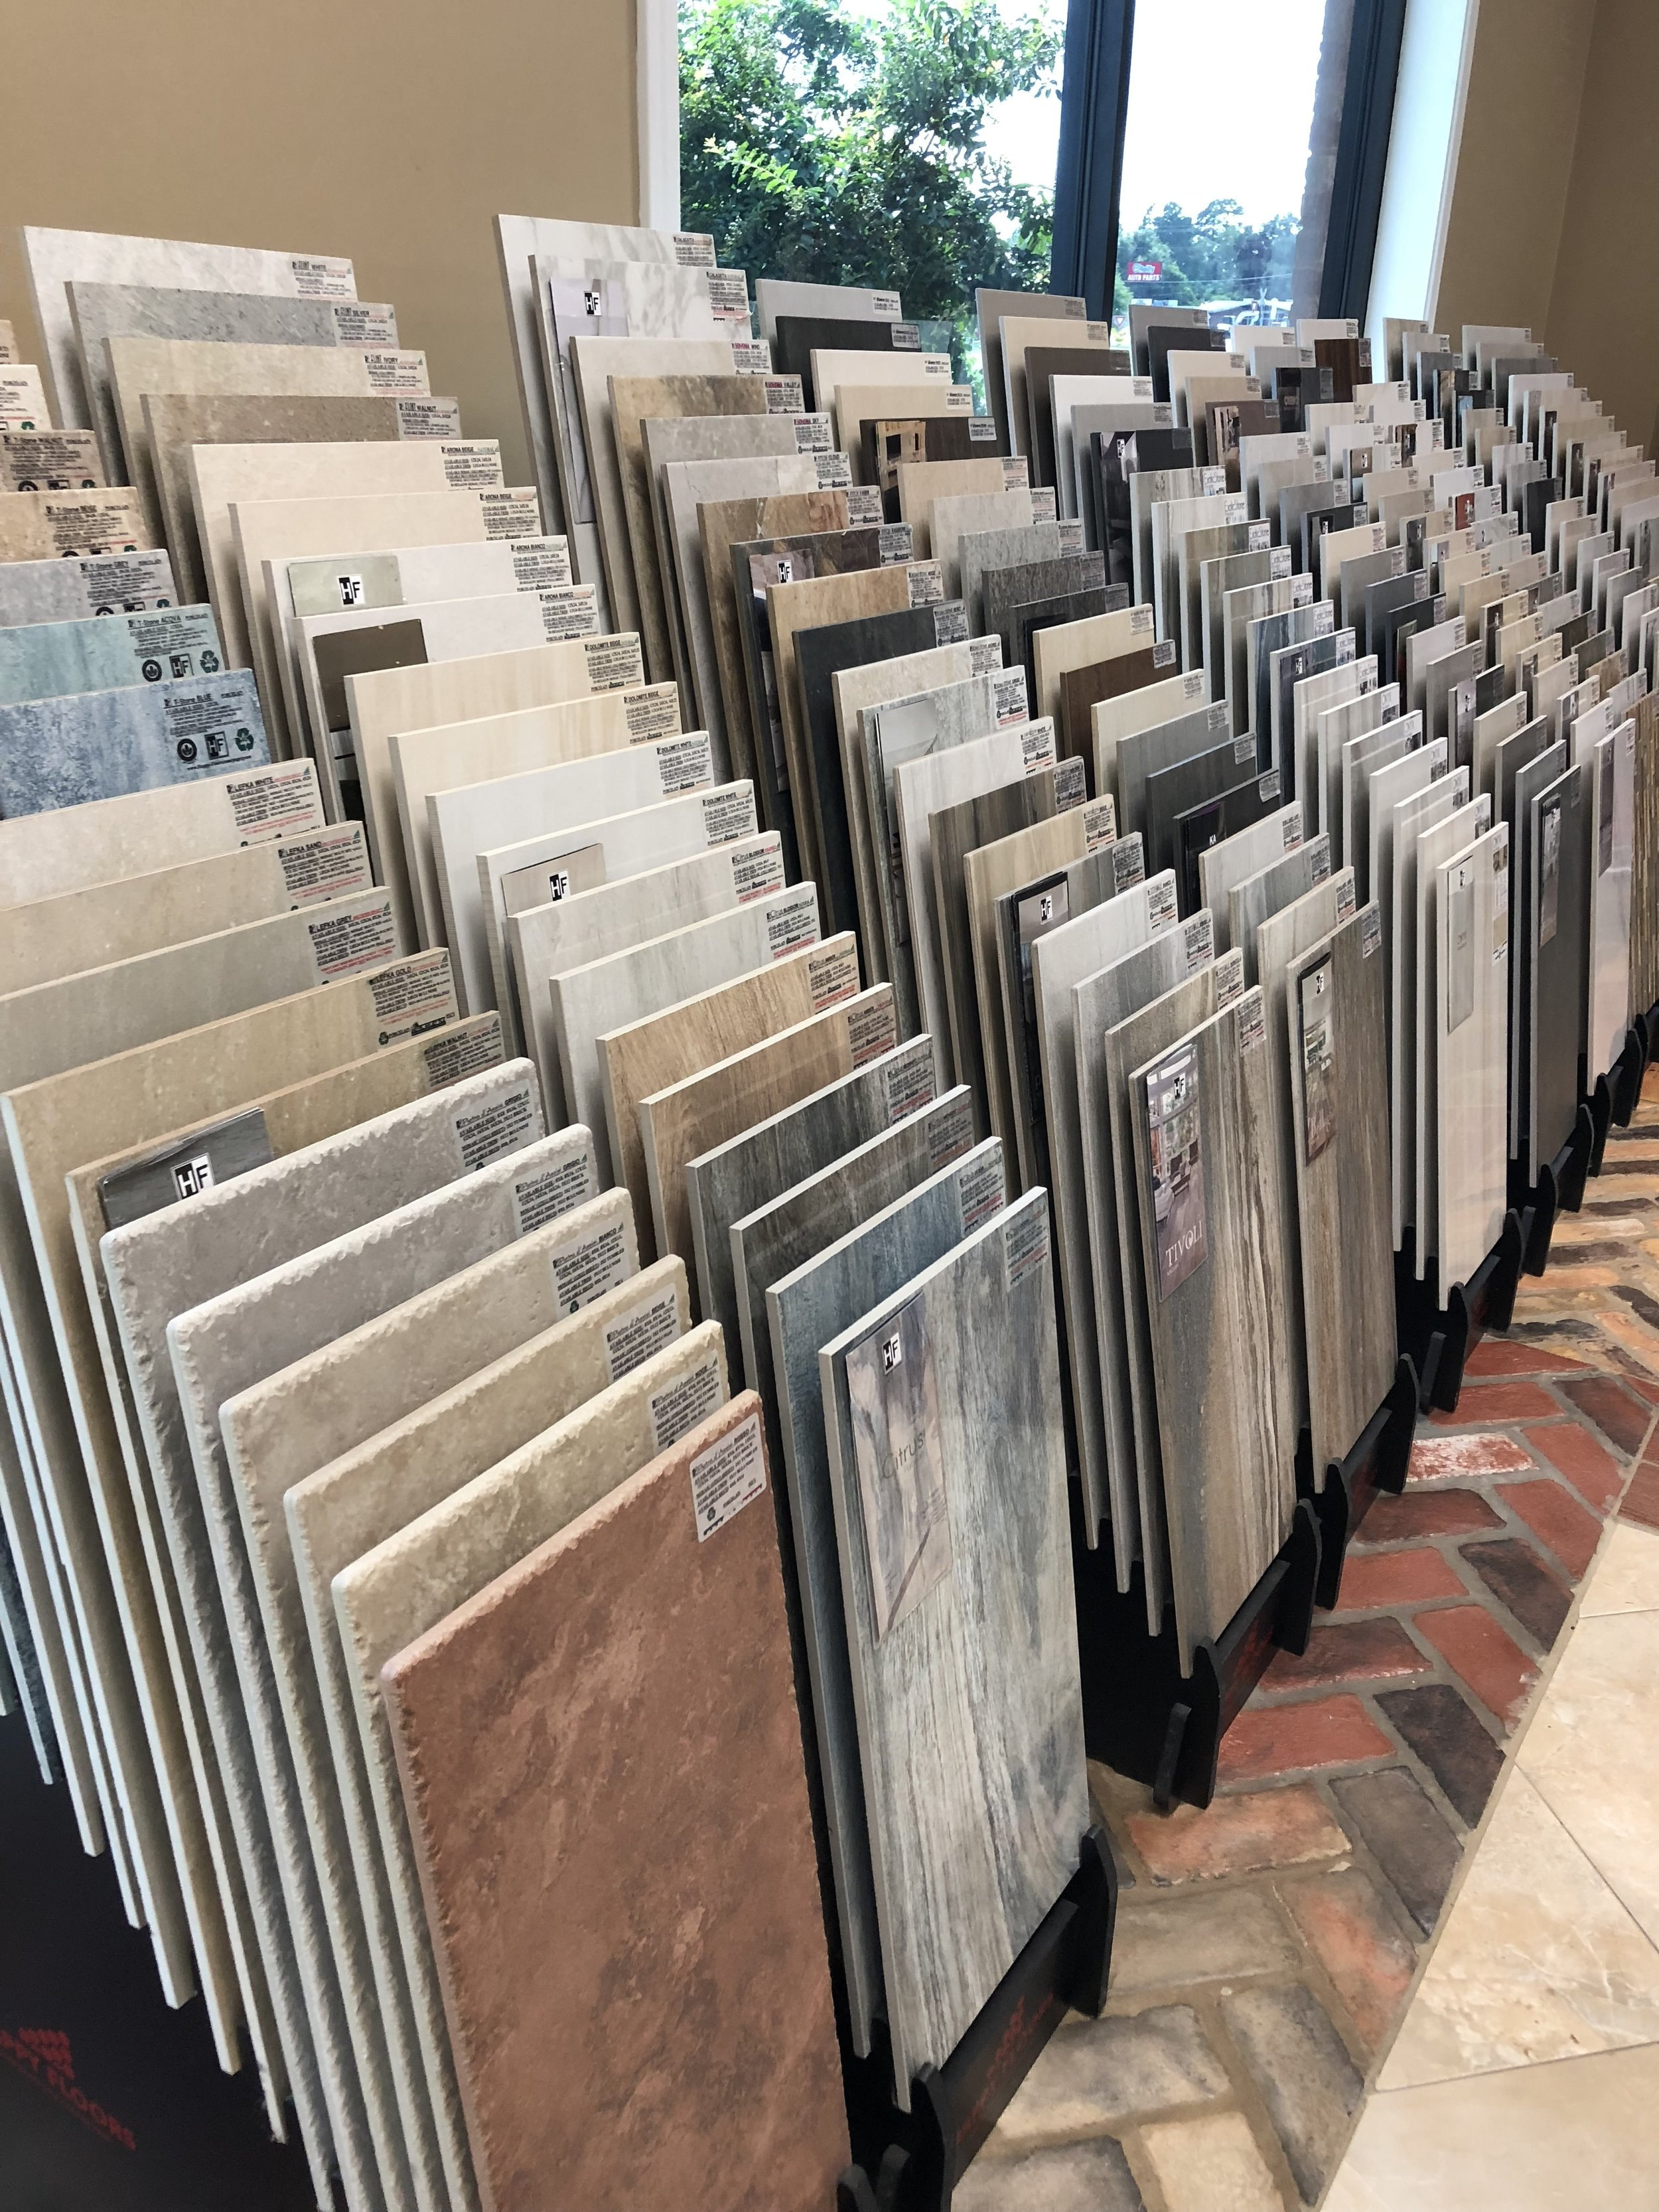 THE BEST SELECTION - We are the partner to call for all your flooring needs. We want to help you get the best floor, tile, or shower you have ever had. Our job is to save you time and money on every project with quality products at top value. So give us a call or come by the store and let's get started.